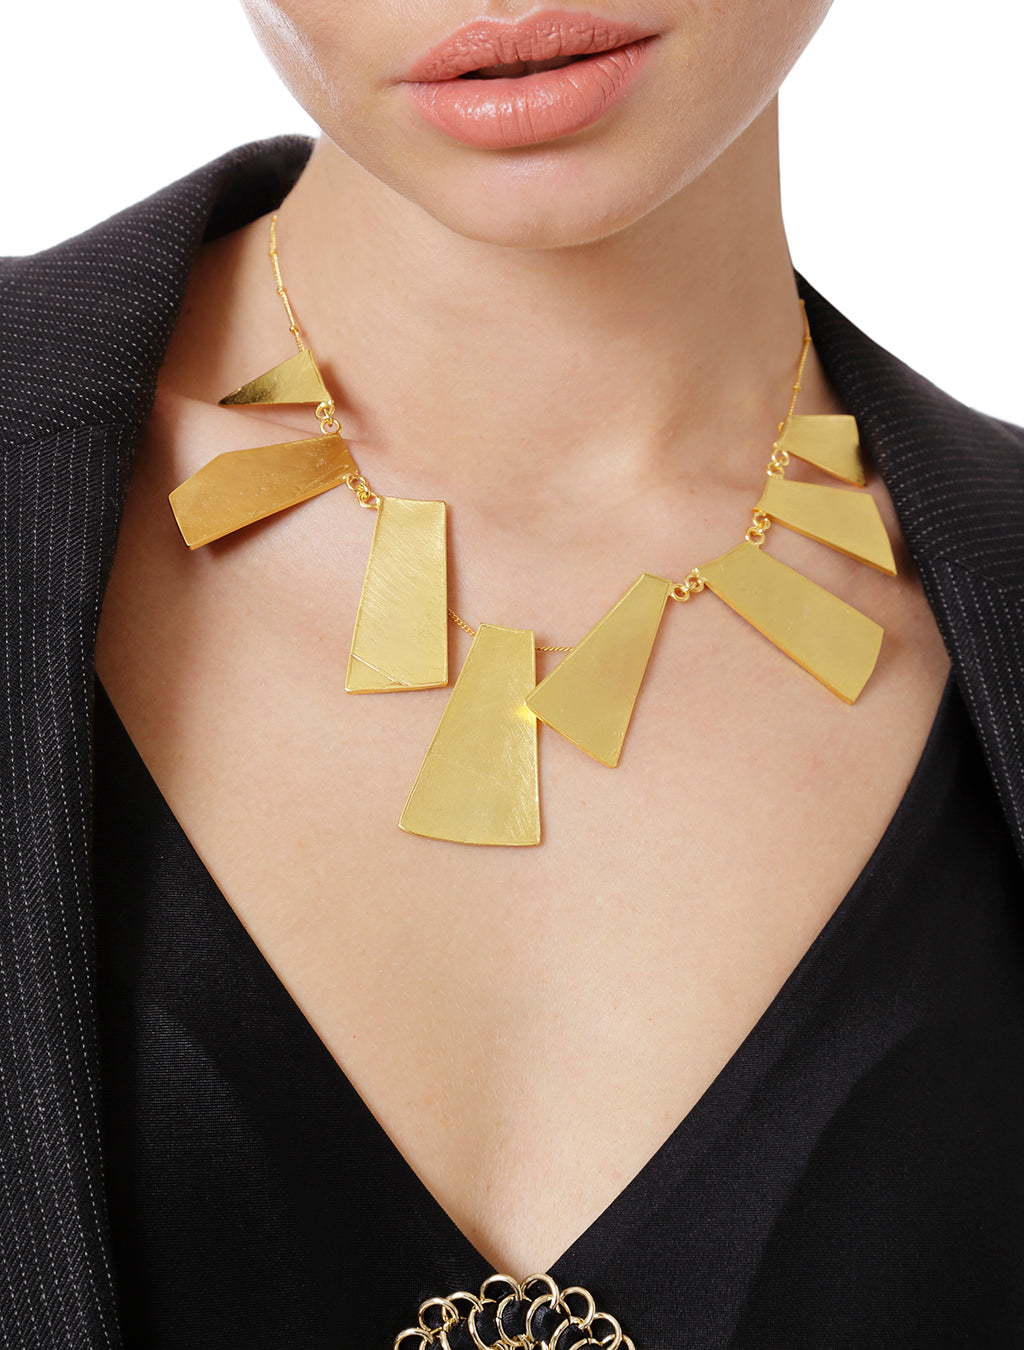 Alexandria Necklace gold/black enamel designed by Alexandra Koumba.